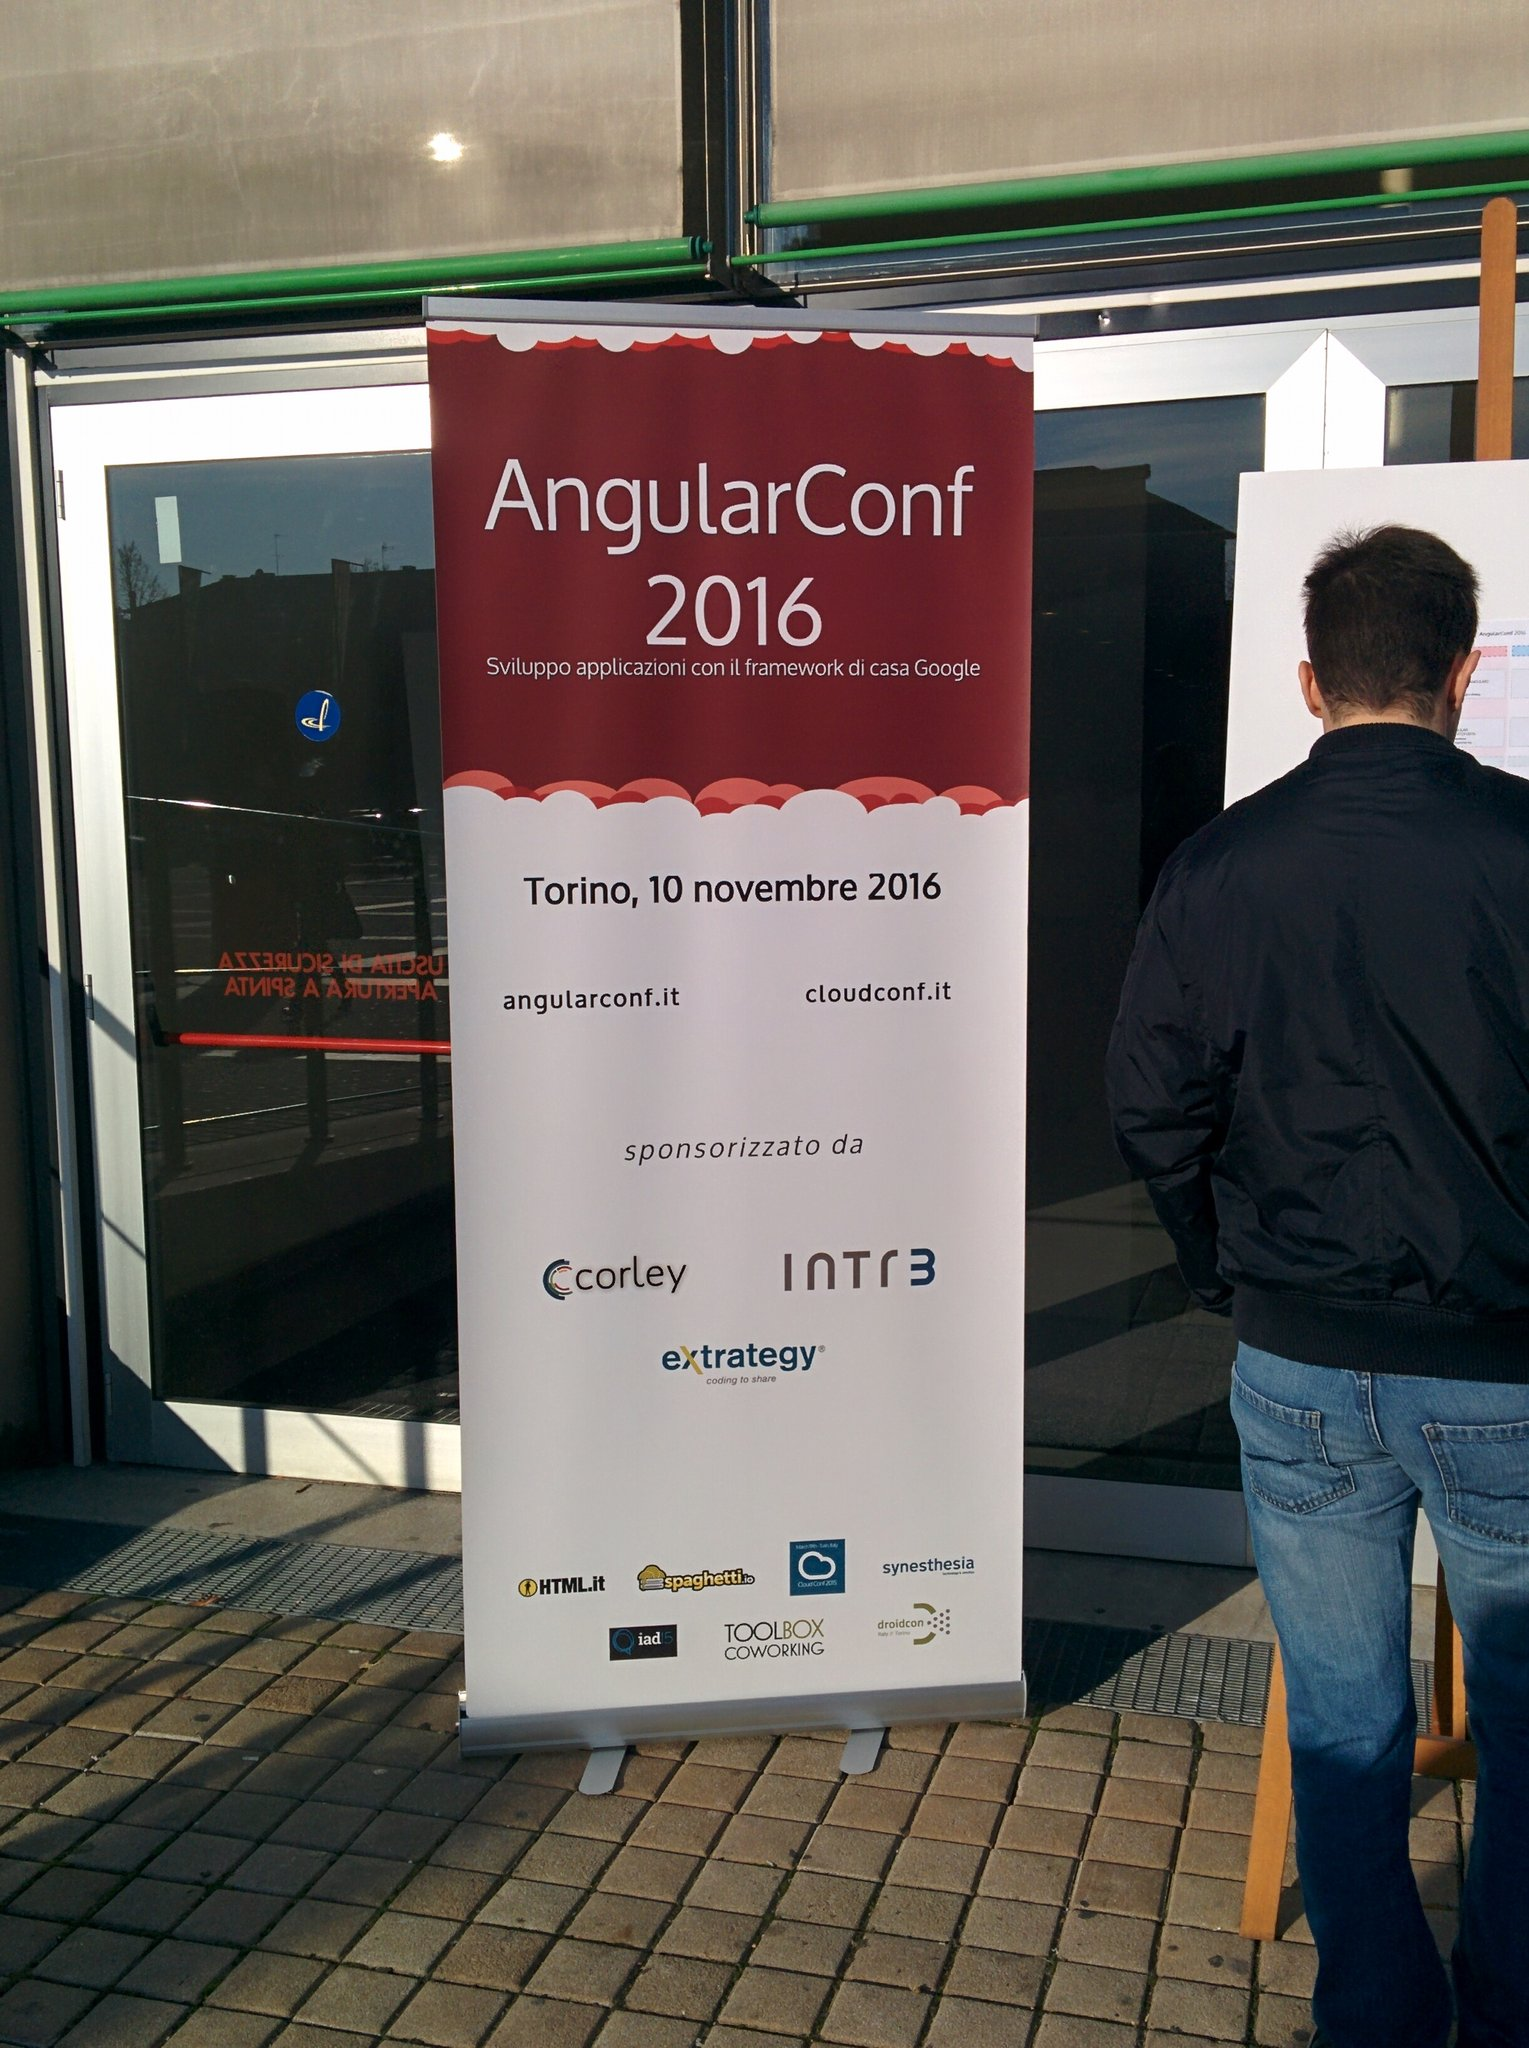 Pronto per #angularconf16 😺 https://t.co/YF1q5d0bNr